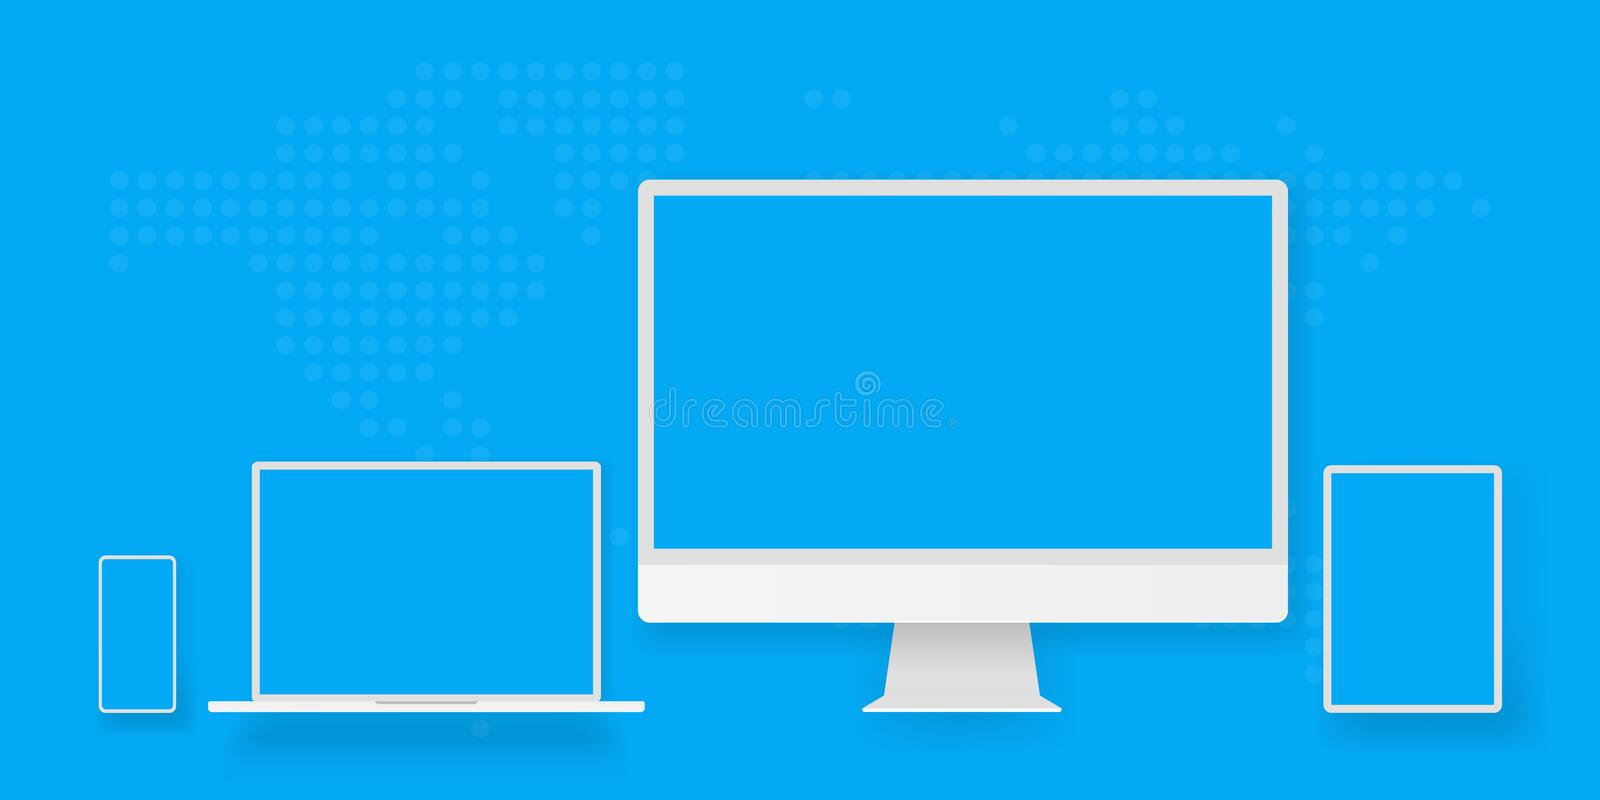 White desktop computer display screen smartphone tablet portable notebook or laptop. Outline mockup electronics devices phone. Monitor lines realistic simple stock illustration